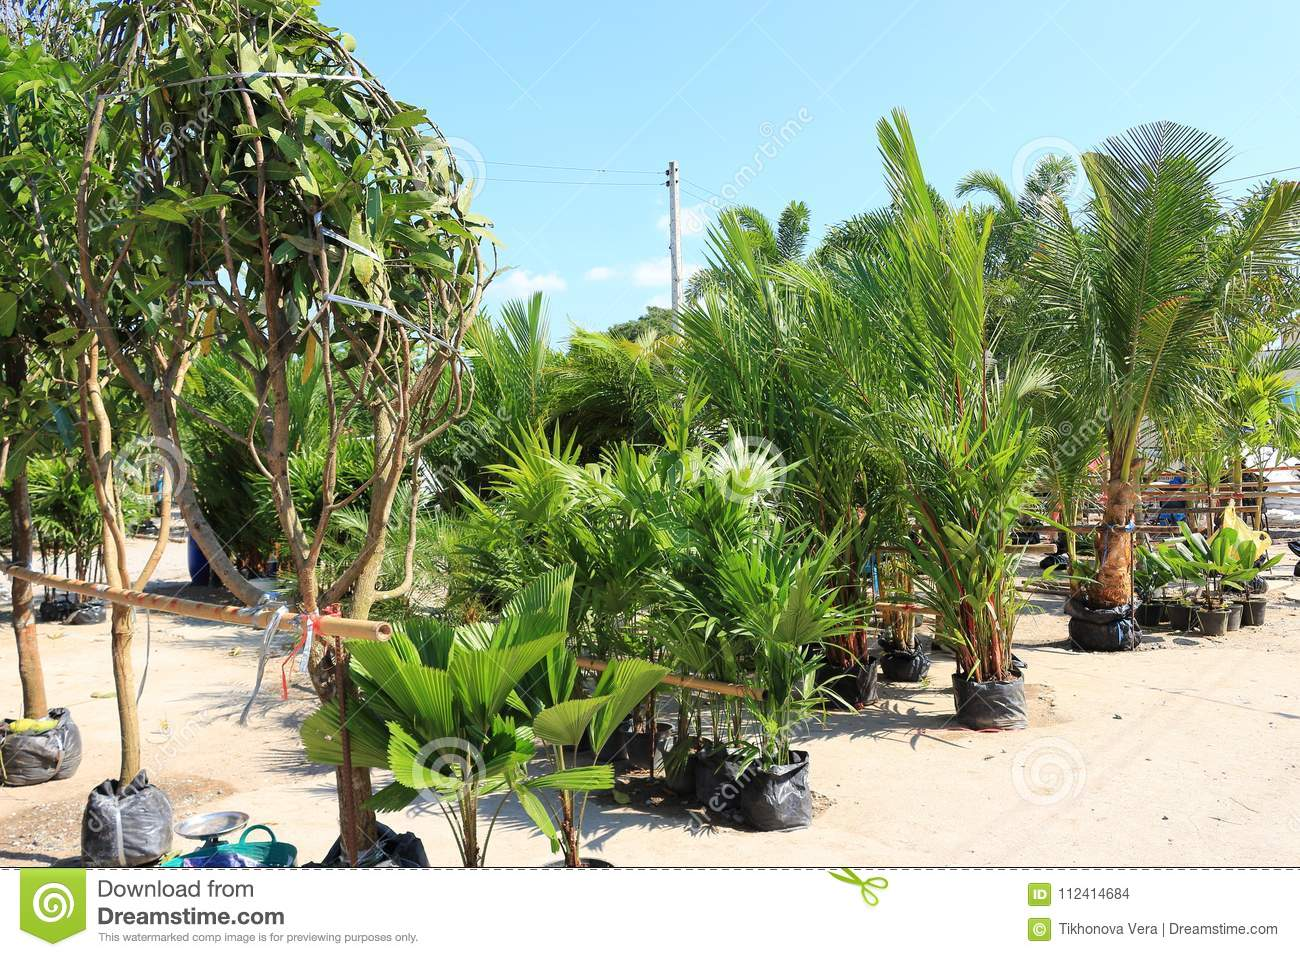 Asian Plants For Sale Asian Greenhouse Plant Market Stock Photo Image Of Environment